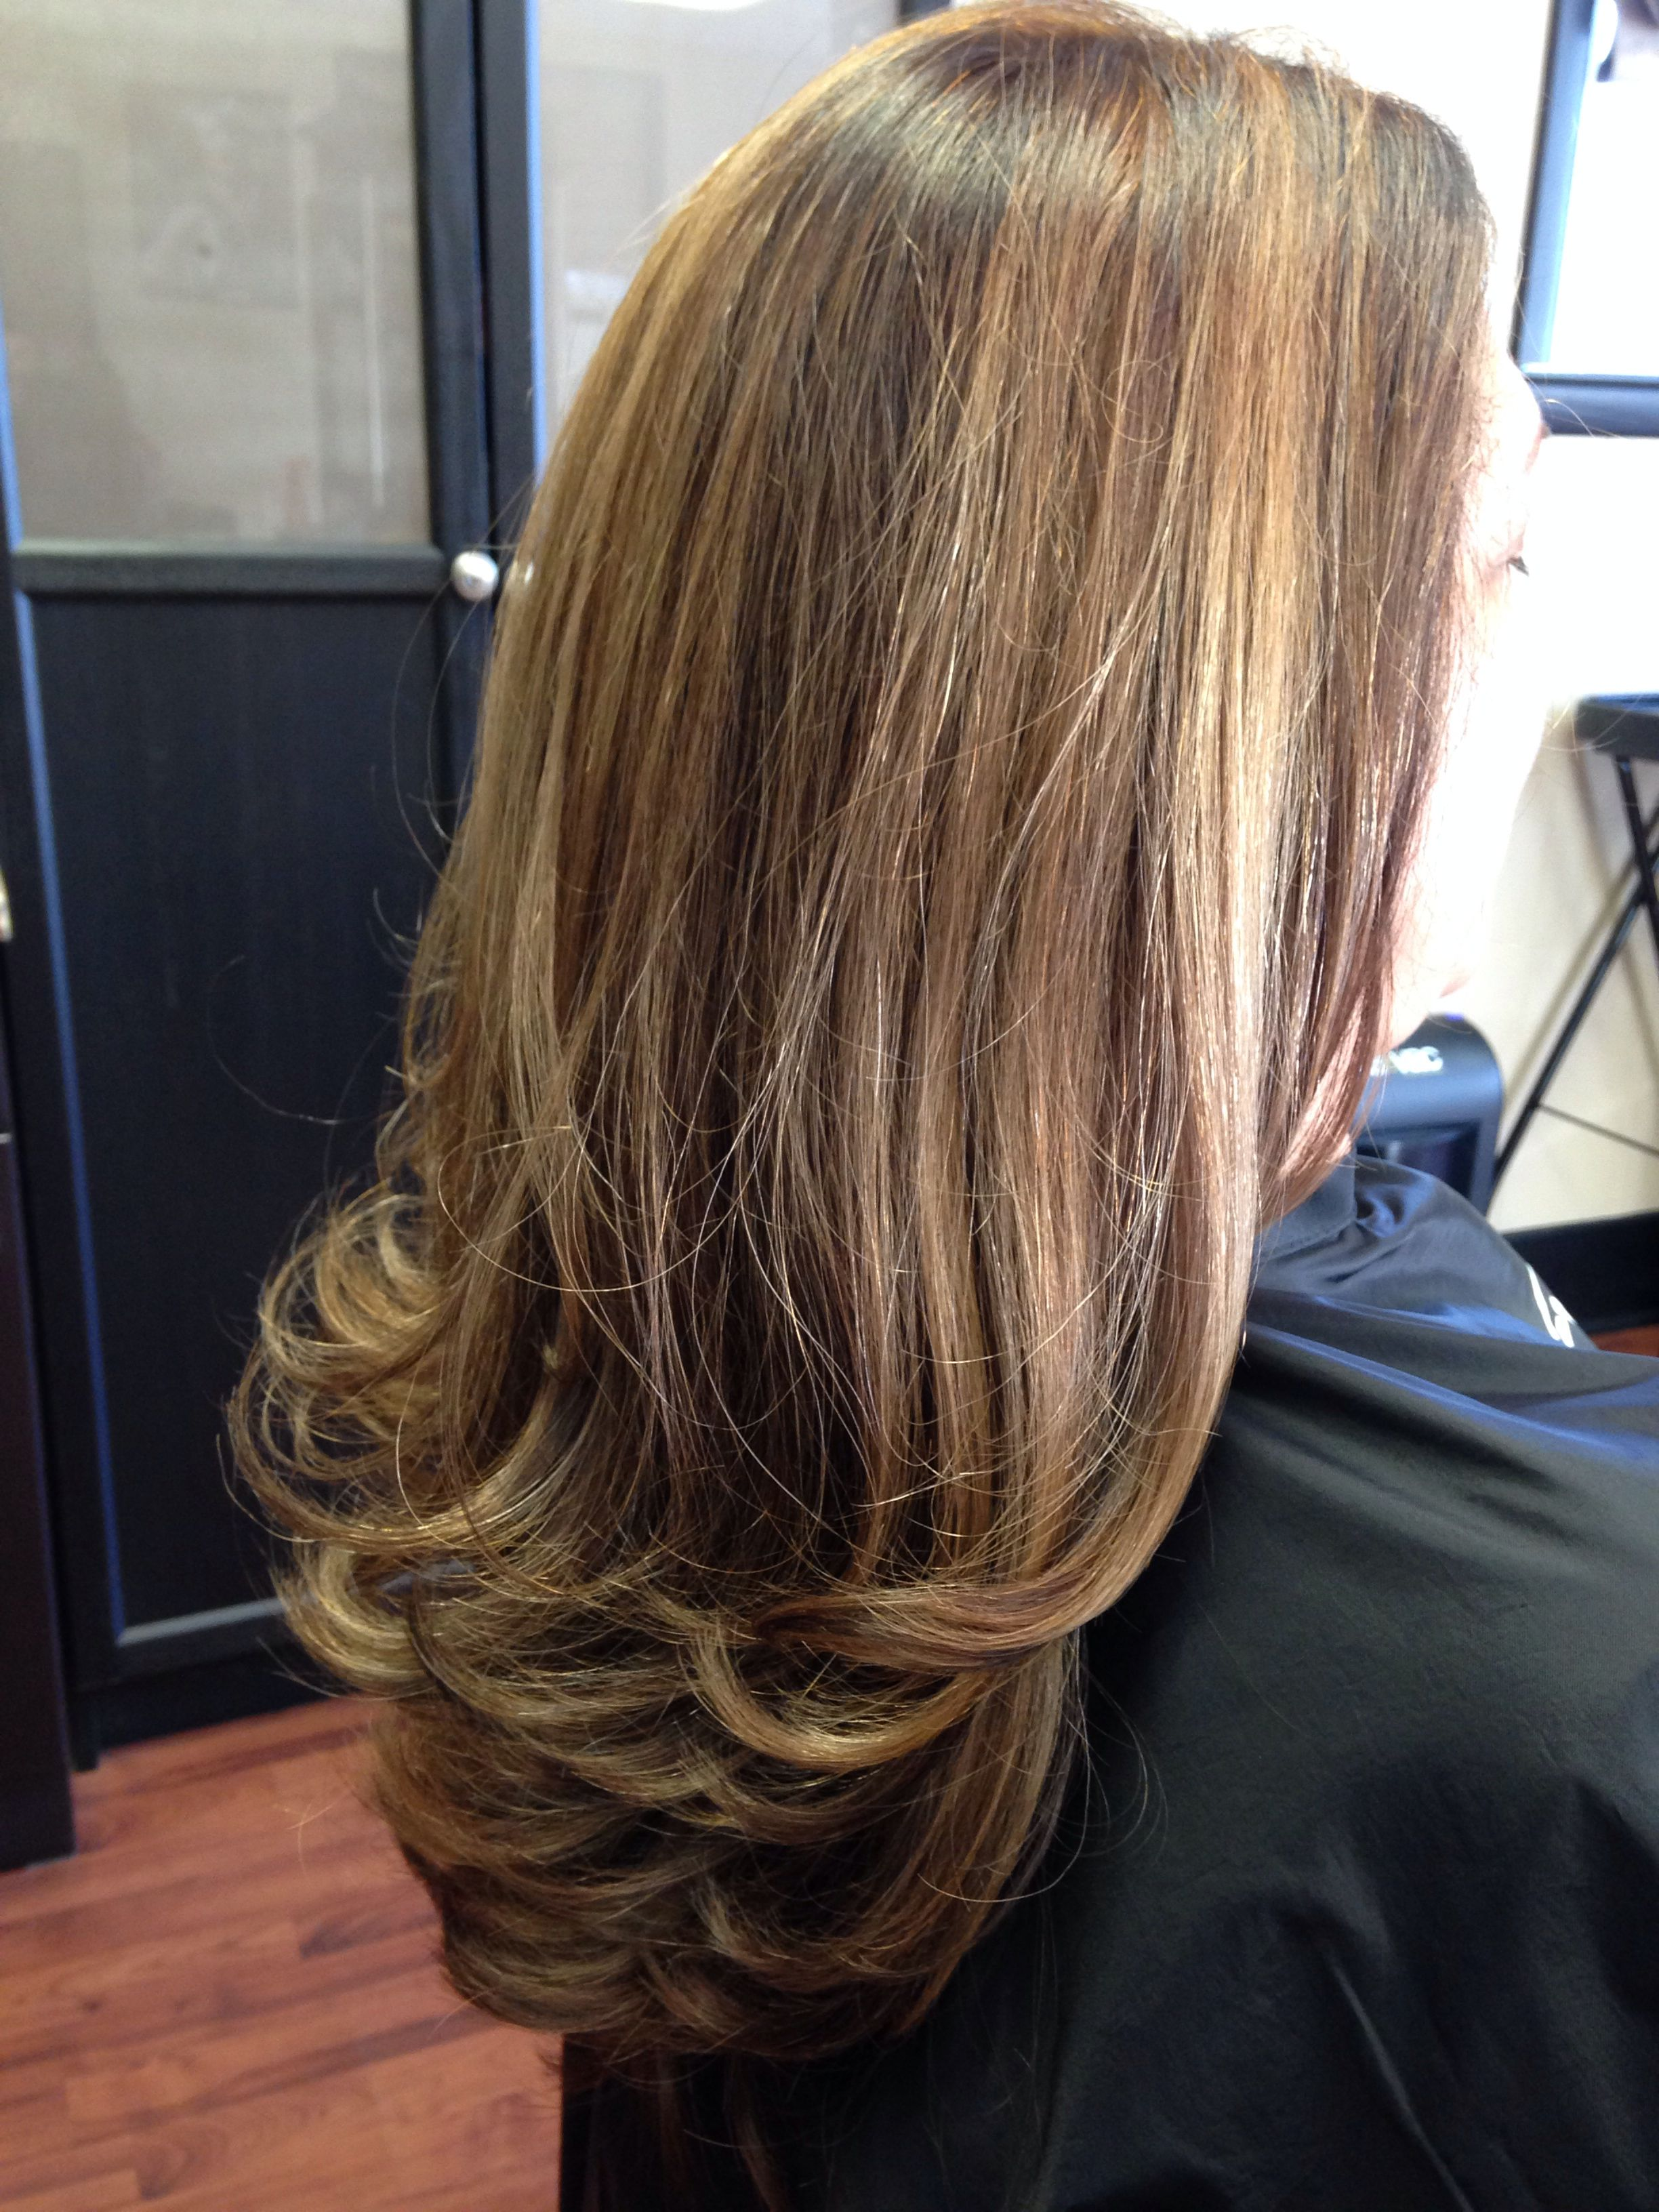 6bv Pm Shines Toned Hl 5n 5n Pm Color Paul Mitchell Color